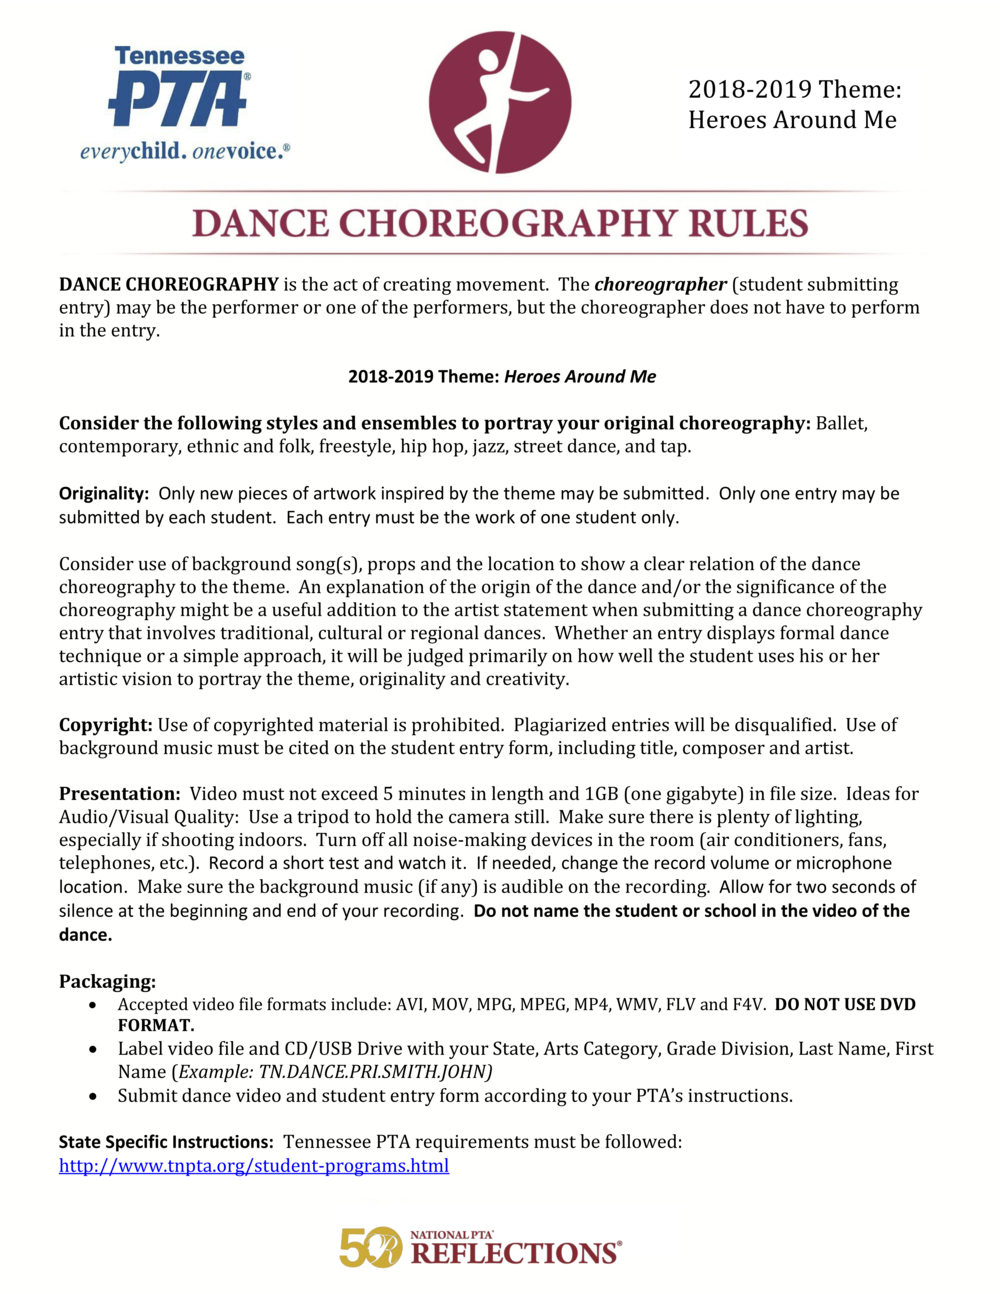 18-19 Reflections Dance Choreography Rules copy.png